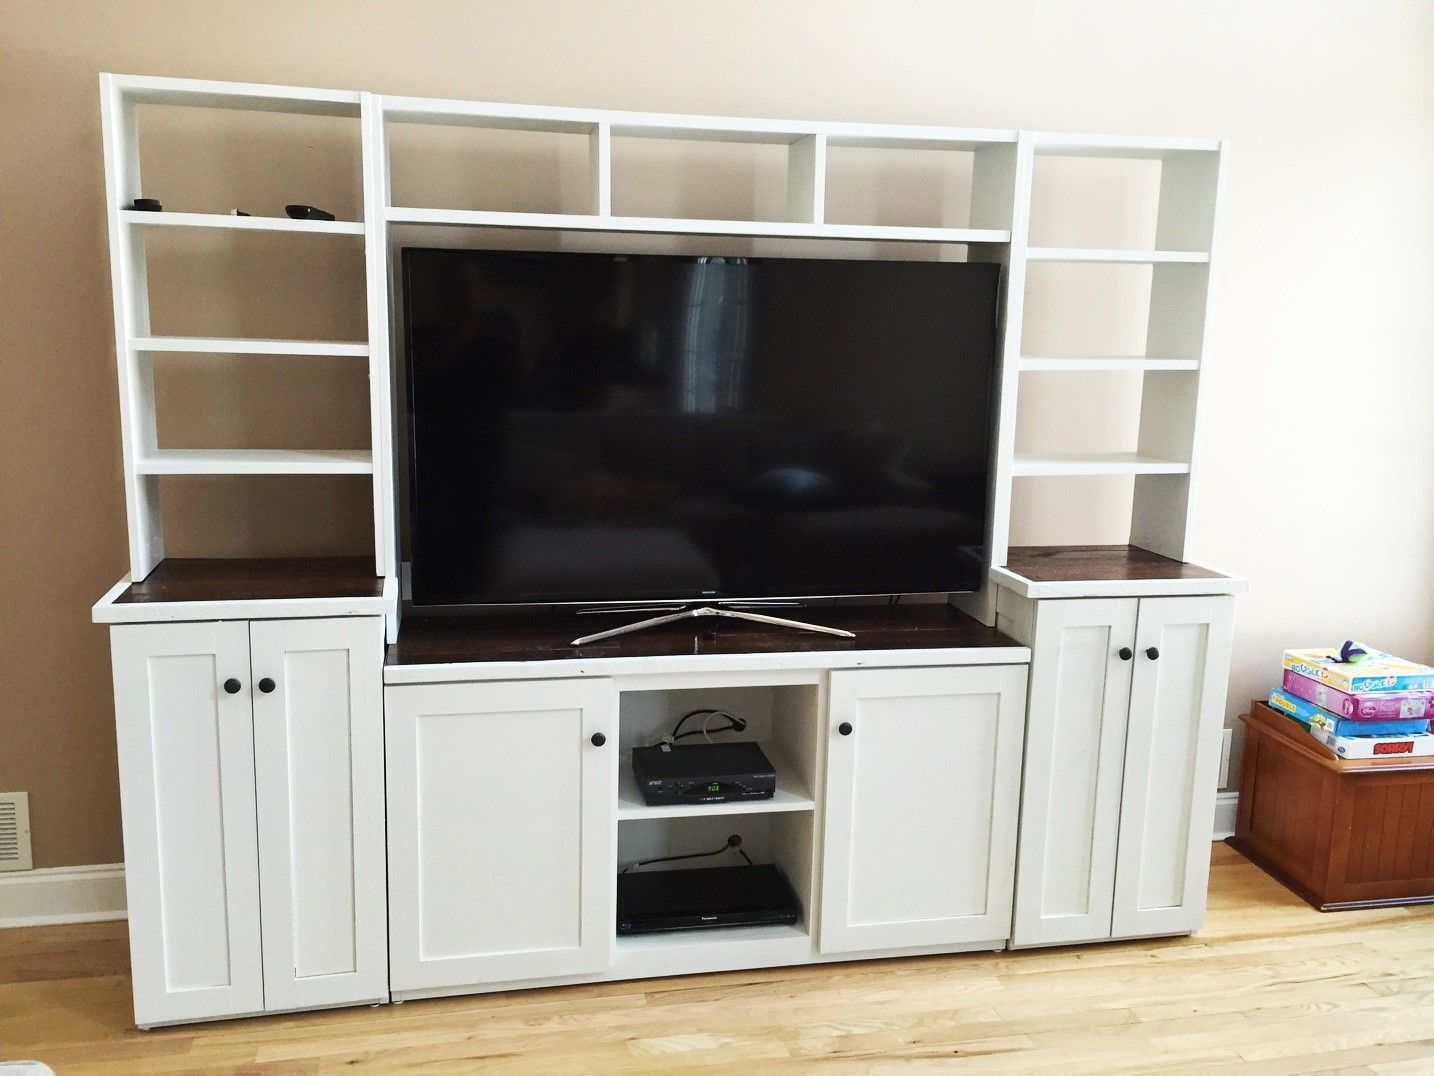 Buy a custom barn wood tv stand media console entertainment center media cabinet media Wooden entertainment center furniture